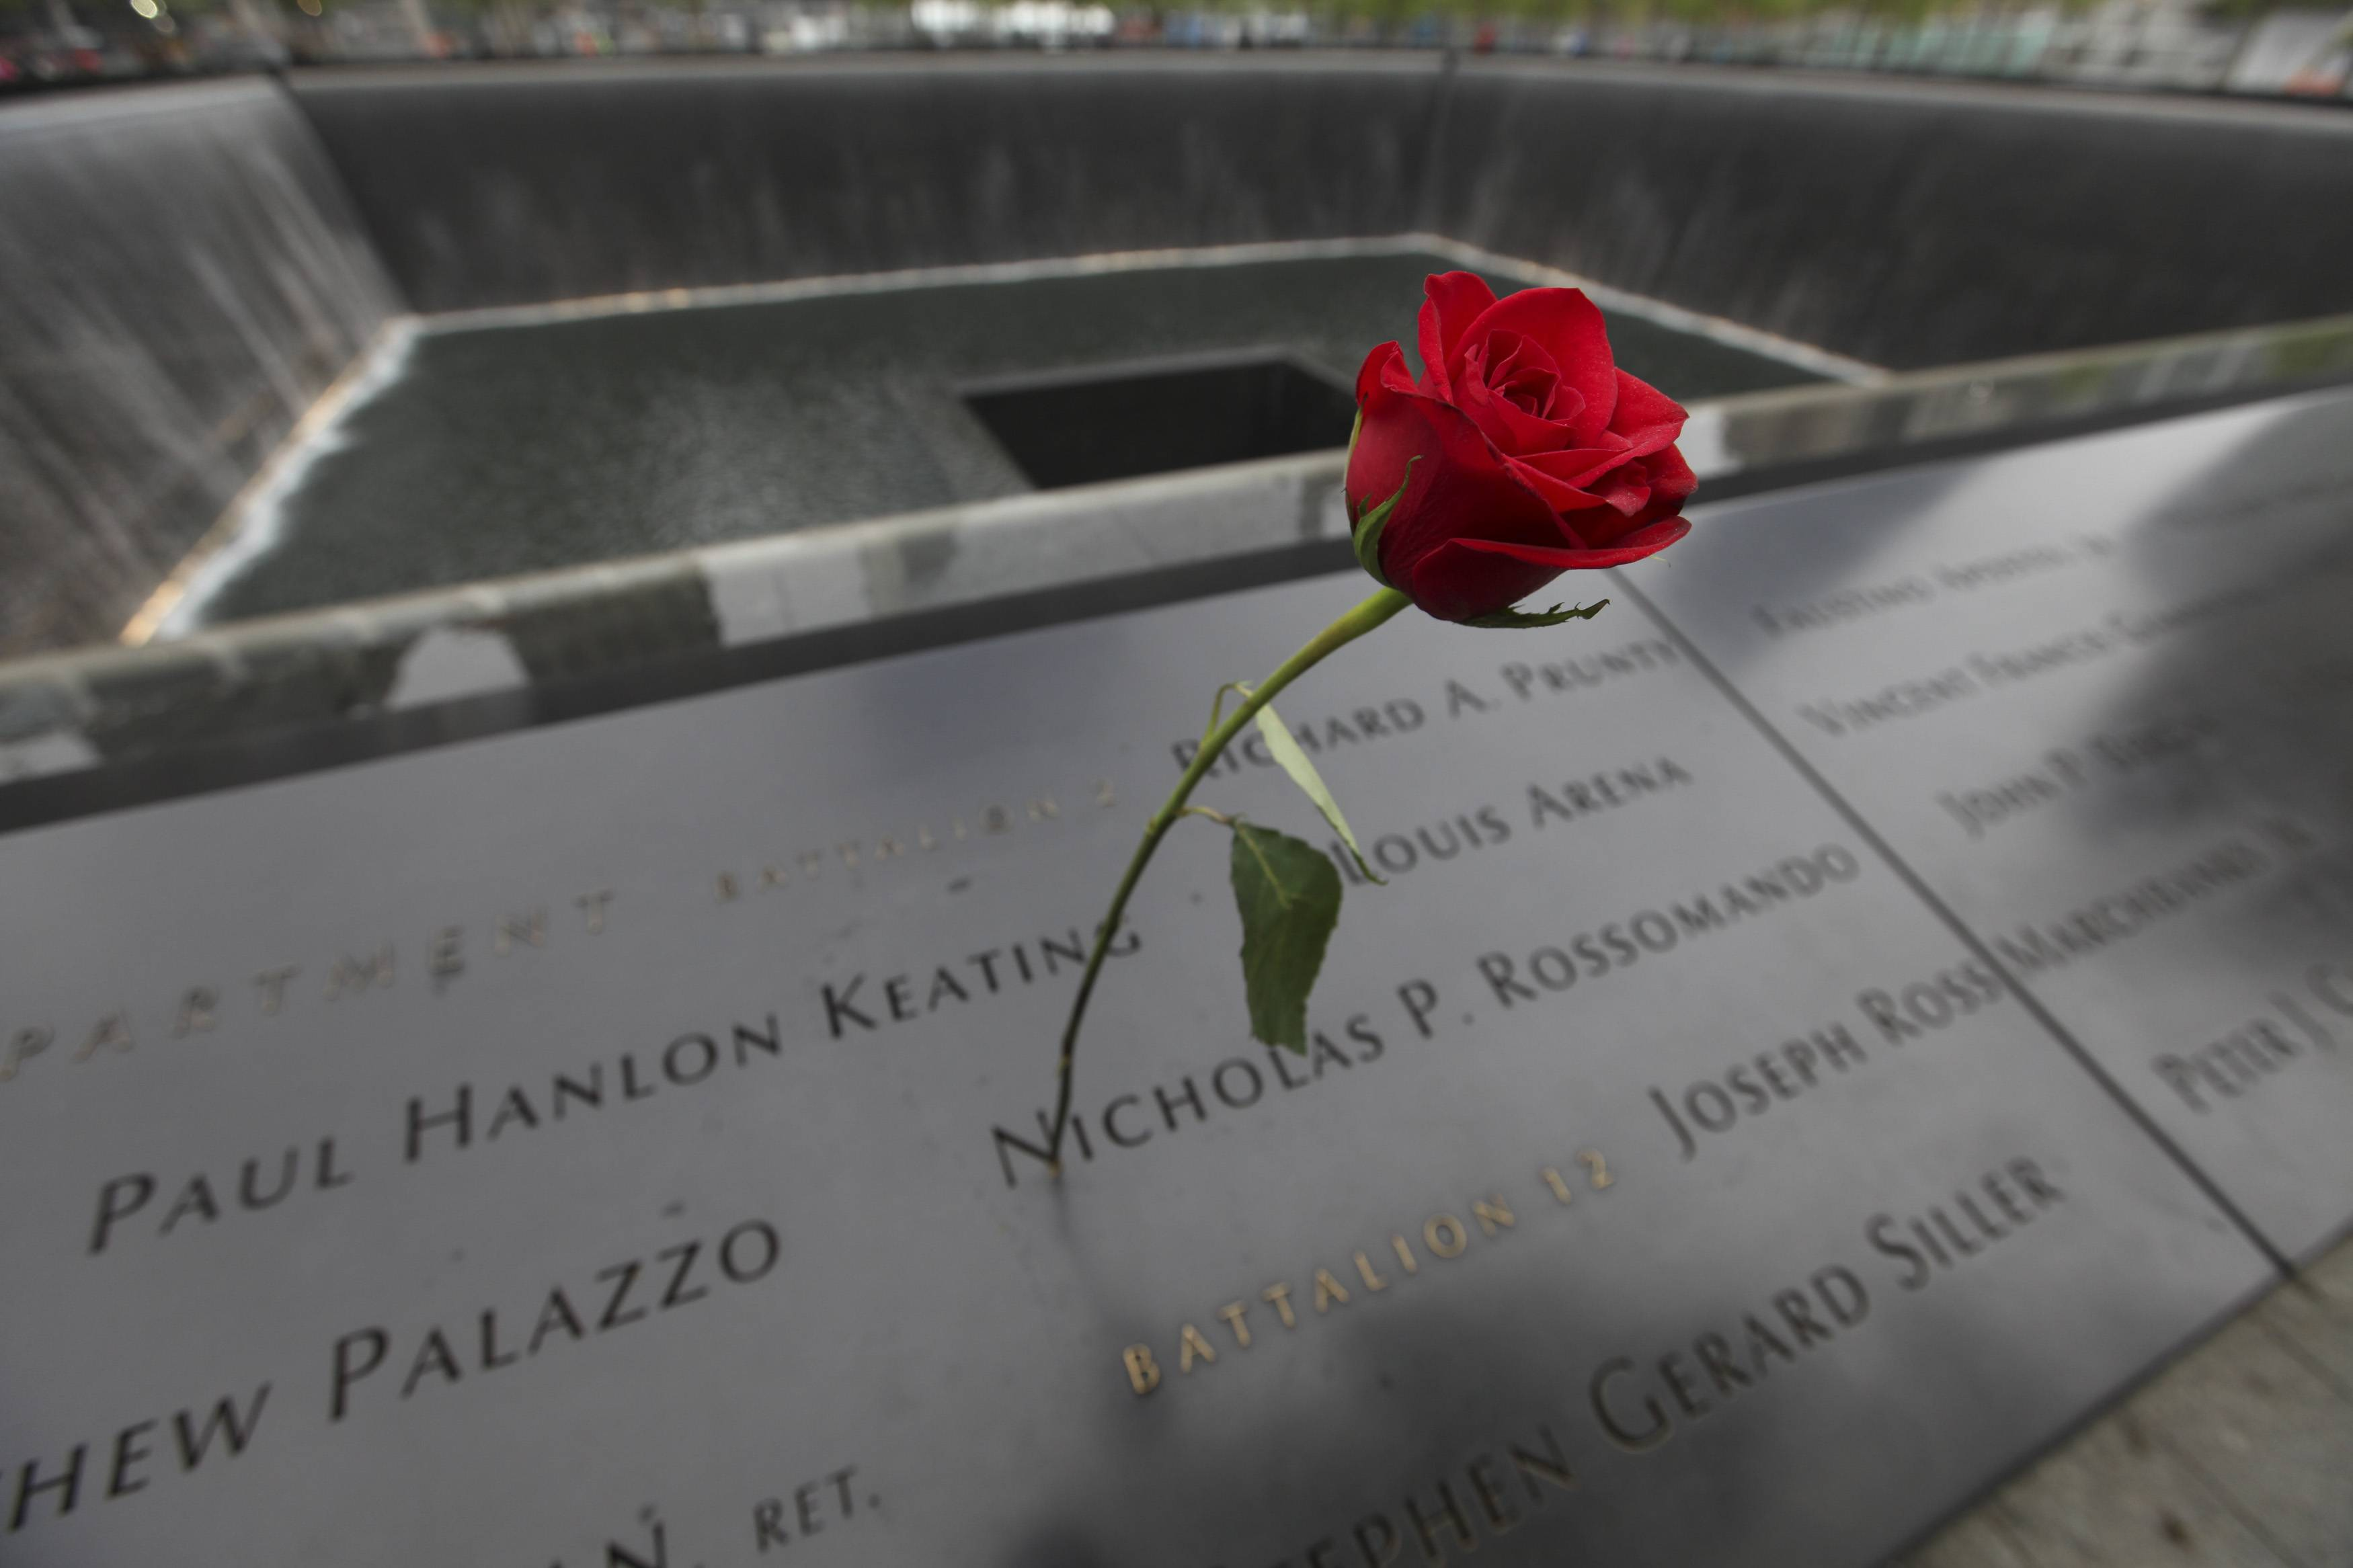 A rose is placed on a name engraved along the South reflecting pool at the Ground Zero memorial site during the dedication ceremony.